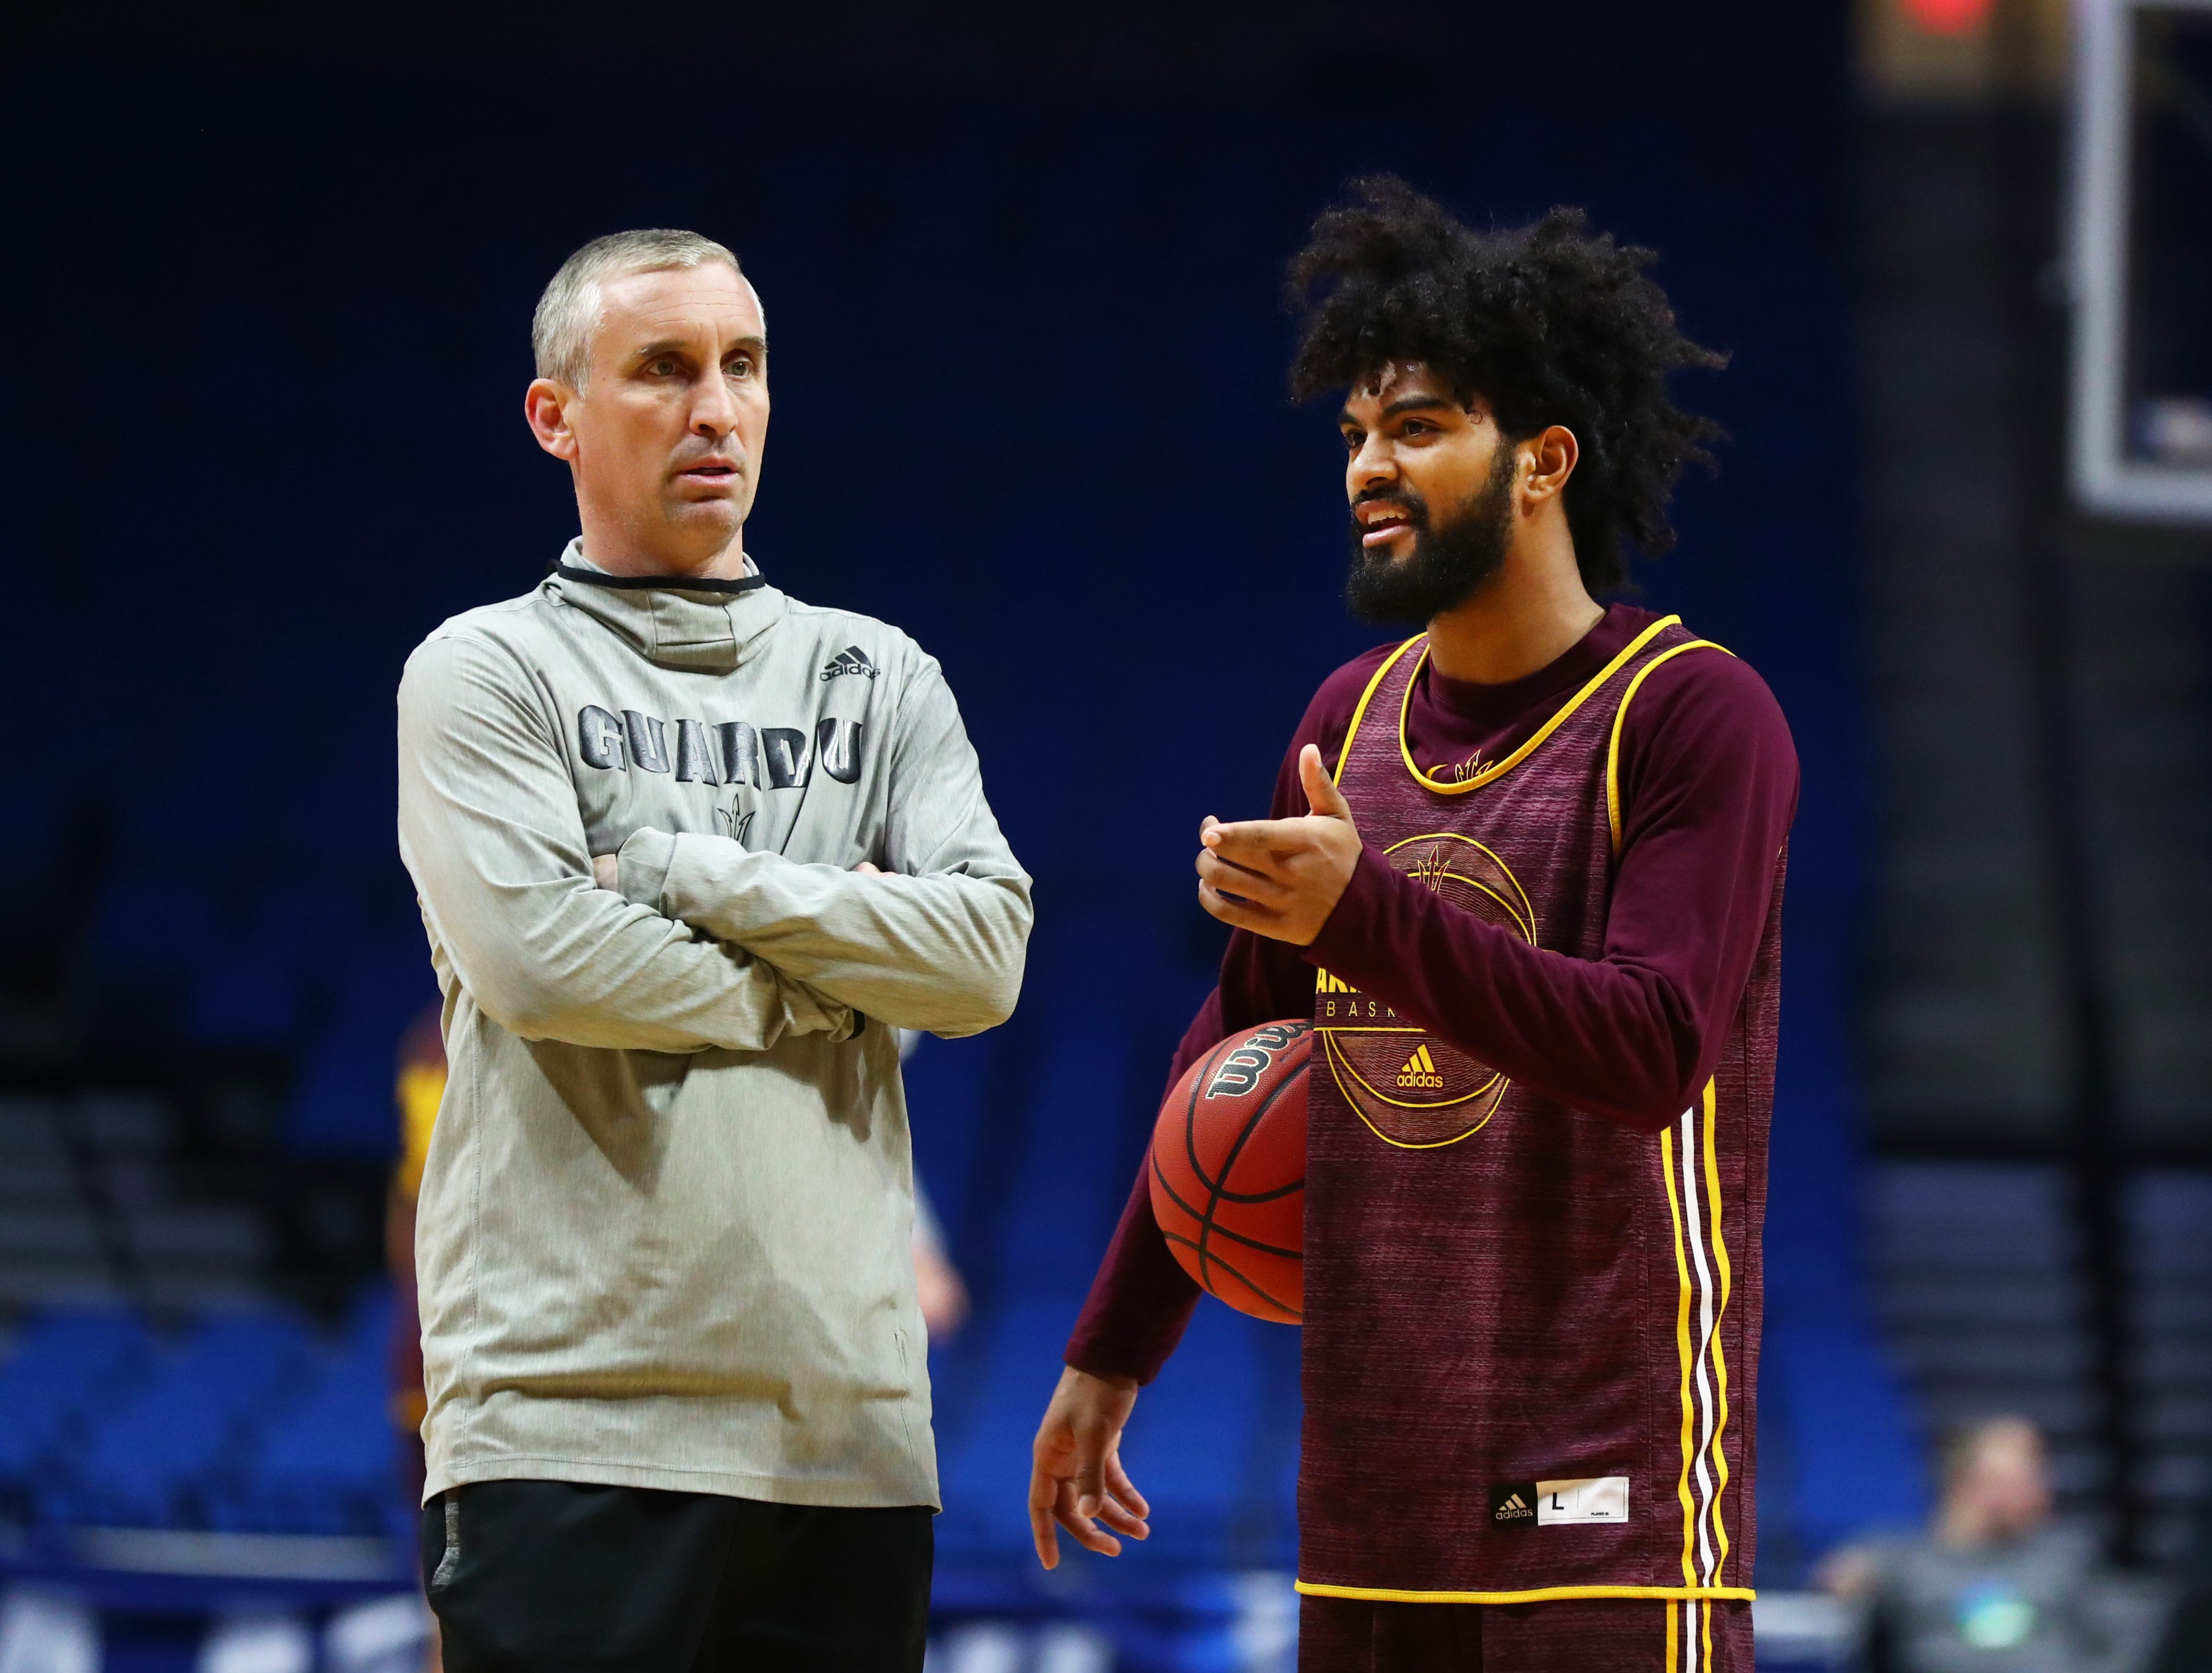 Mar 21, 2019; Tulsa, OK, USA; Arizona State Sun Devils head coach Bobby Hurley (left) with guard Remy Martin during practice before the first round of the 2019 NCAA Tournament at BOK Center. Mandatory Credit: Mark J. Rebilas-USA TODAY Sports